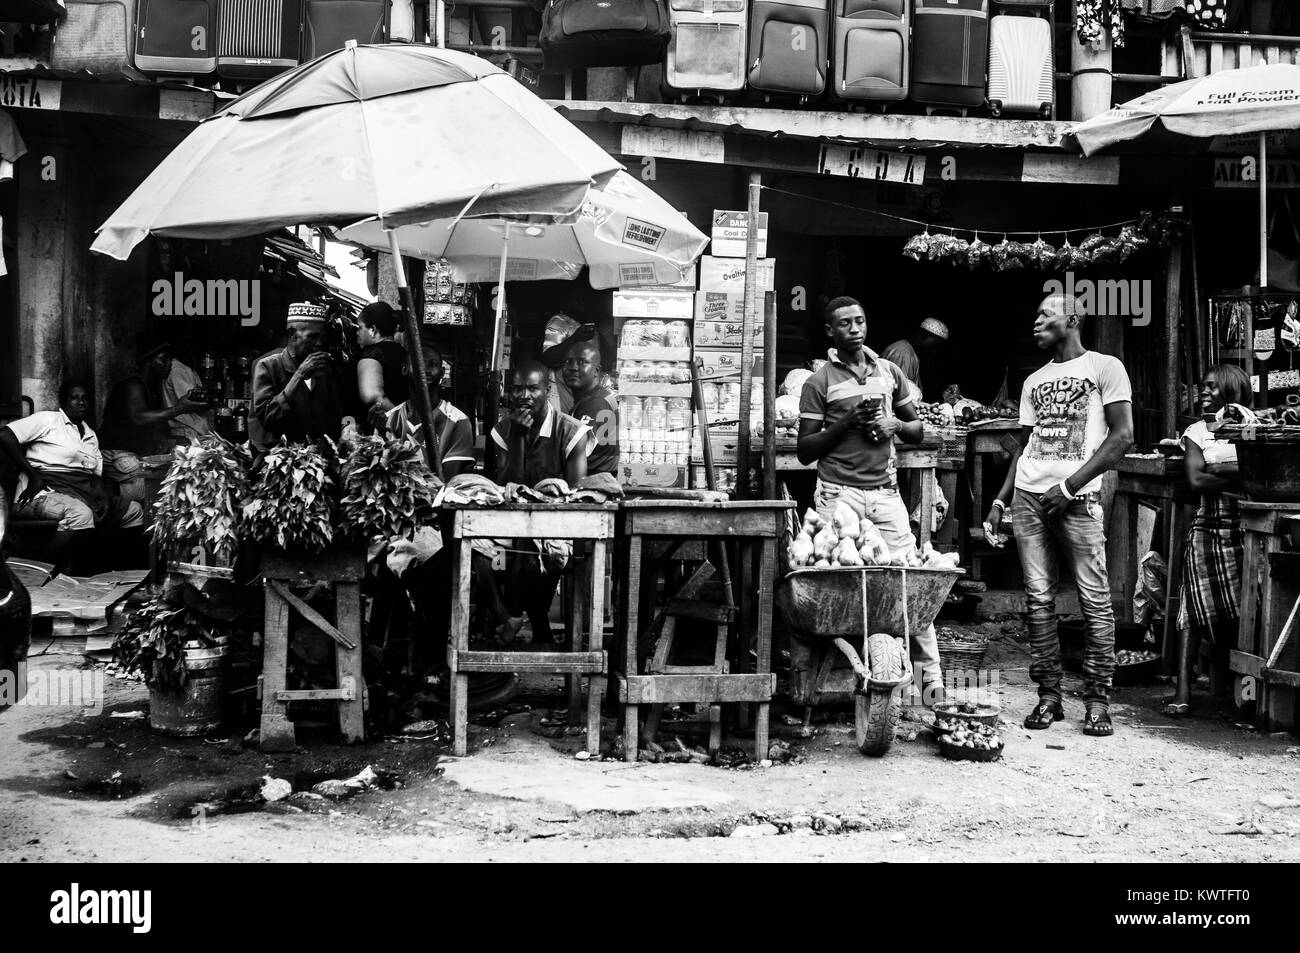 A busy market in Lagos Nigeria. - Stock Image